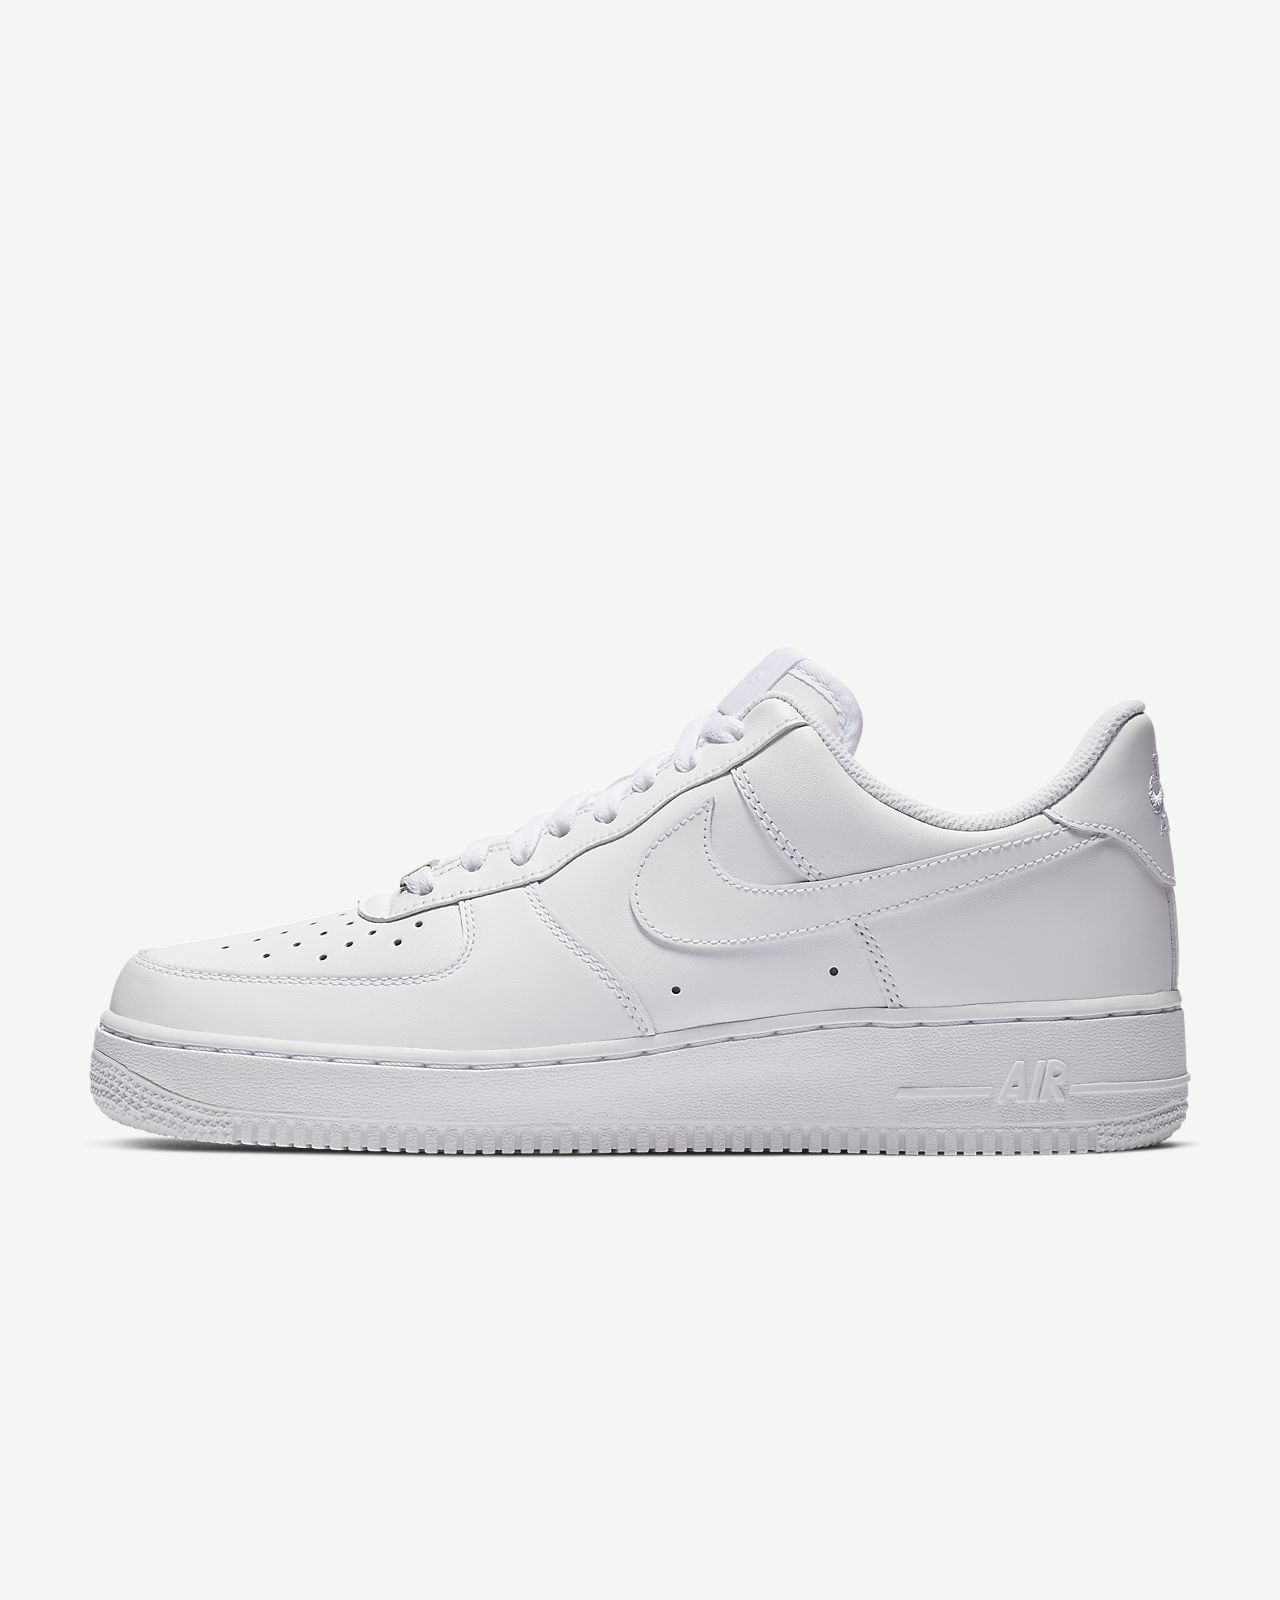 nike air force 1 low damen weiß, 95 schwarz blau, nike air